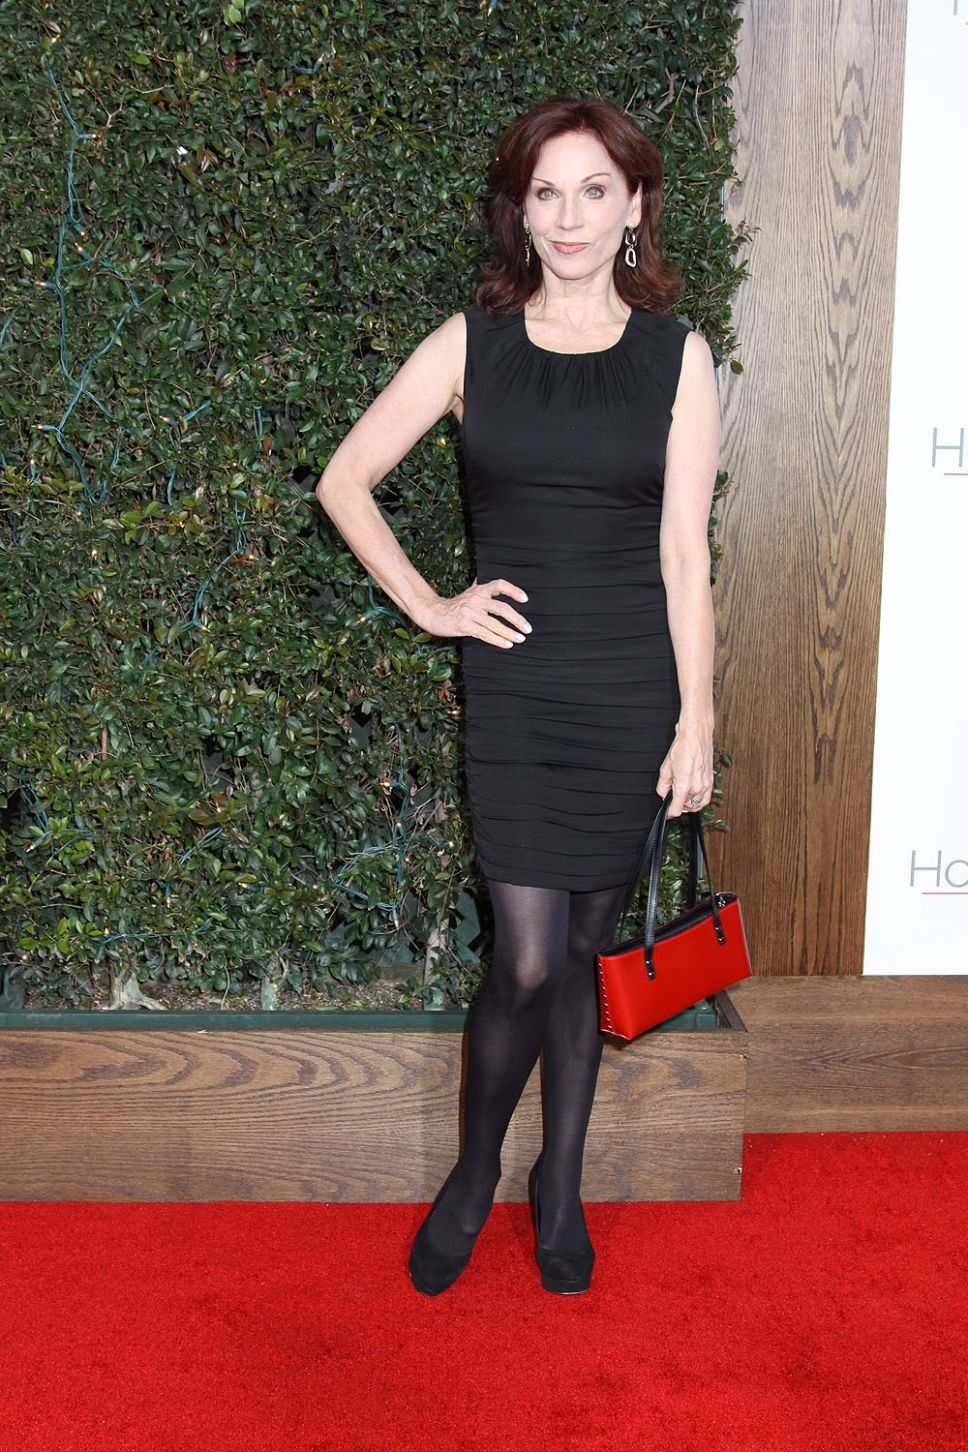 Marilu Henner born April 6, 1952 (age 66) nudes (59 foto and video), Ass, Leaked, Feet, lingerie 2020